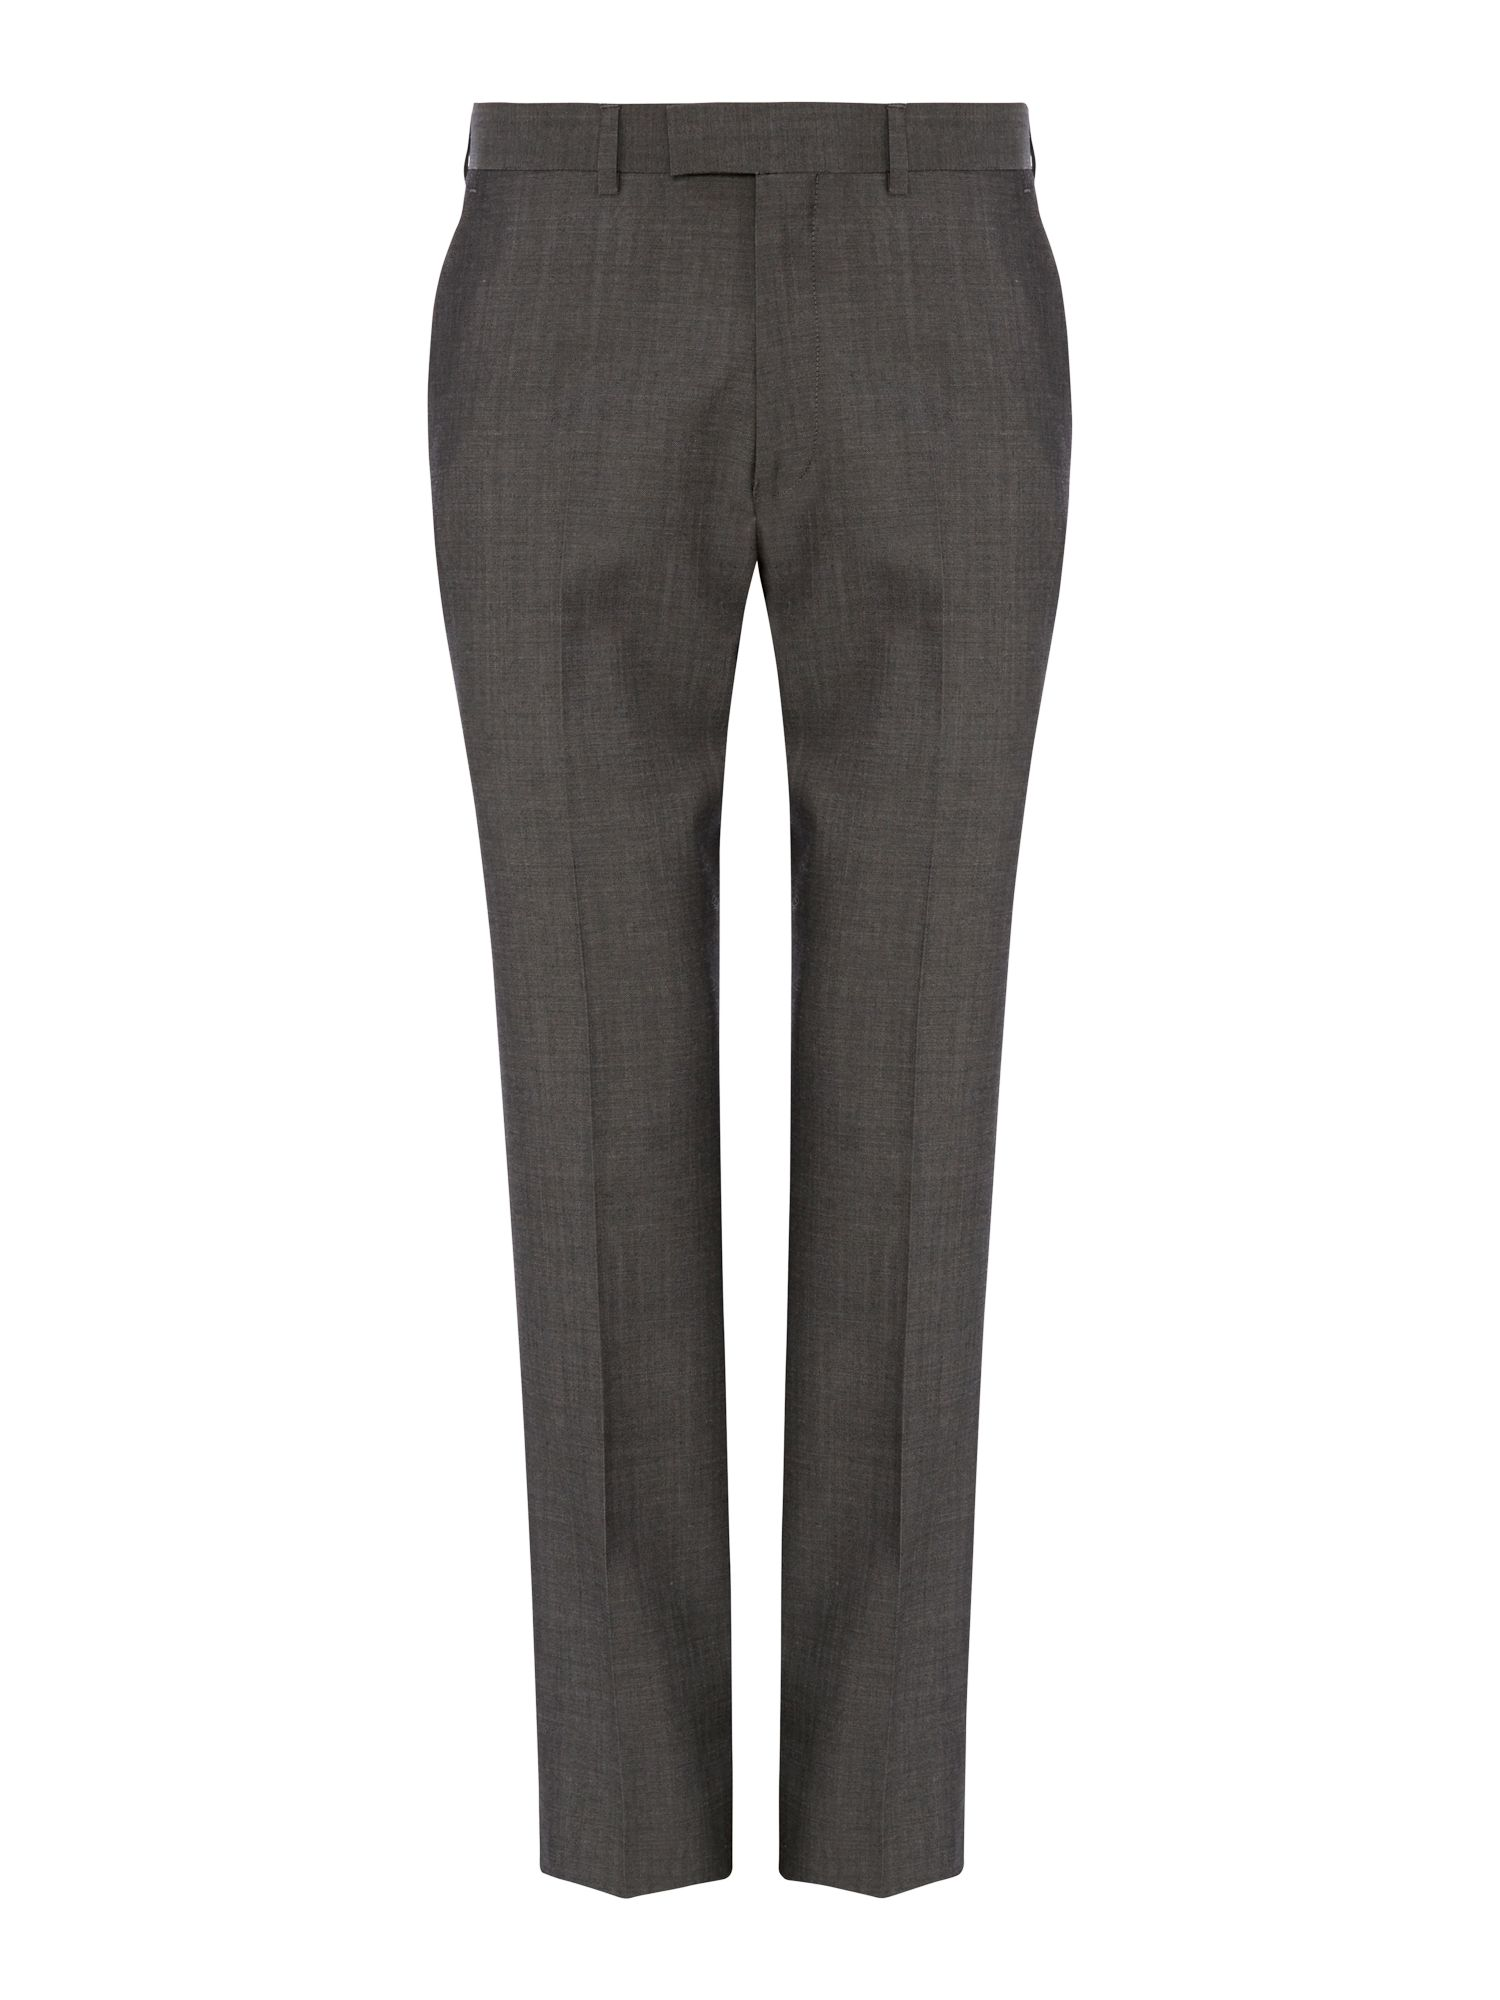 Sharkskin formal suit trousers